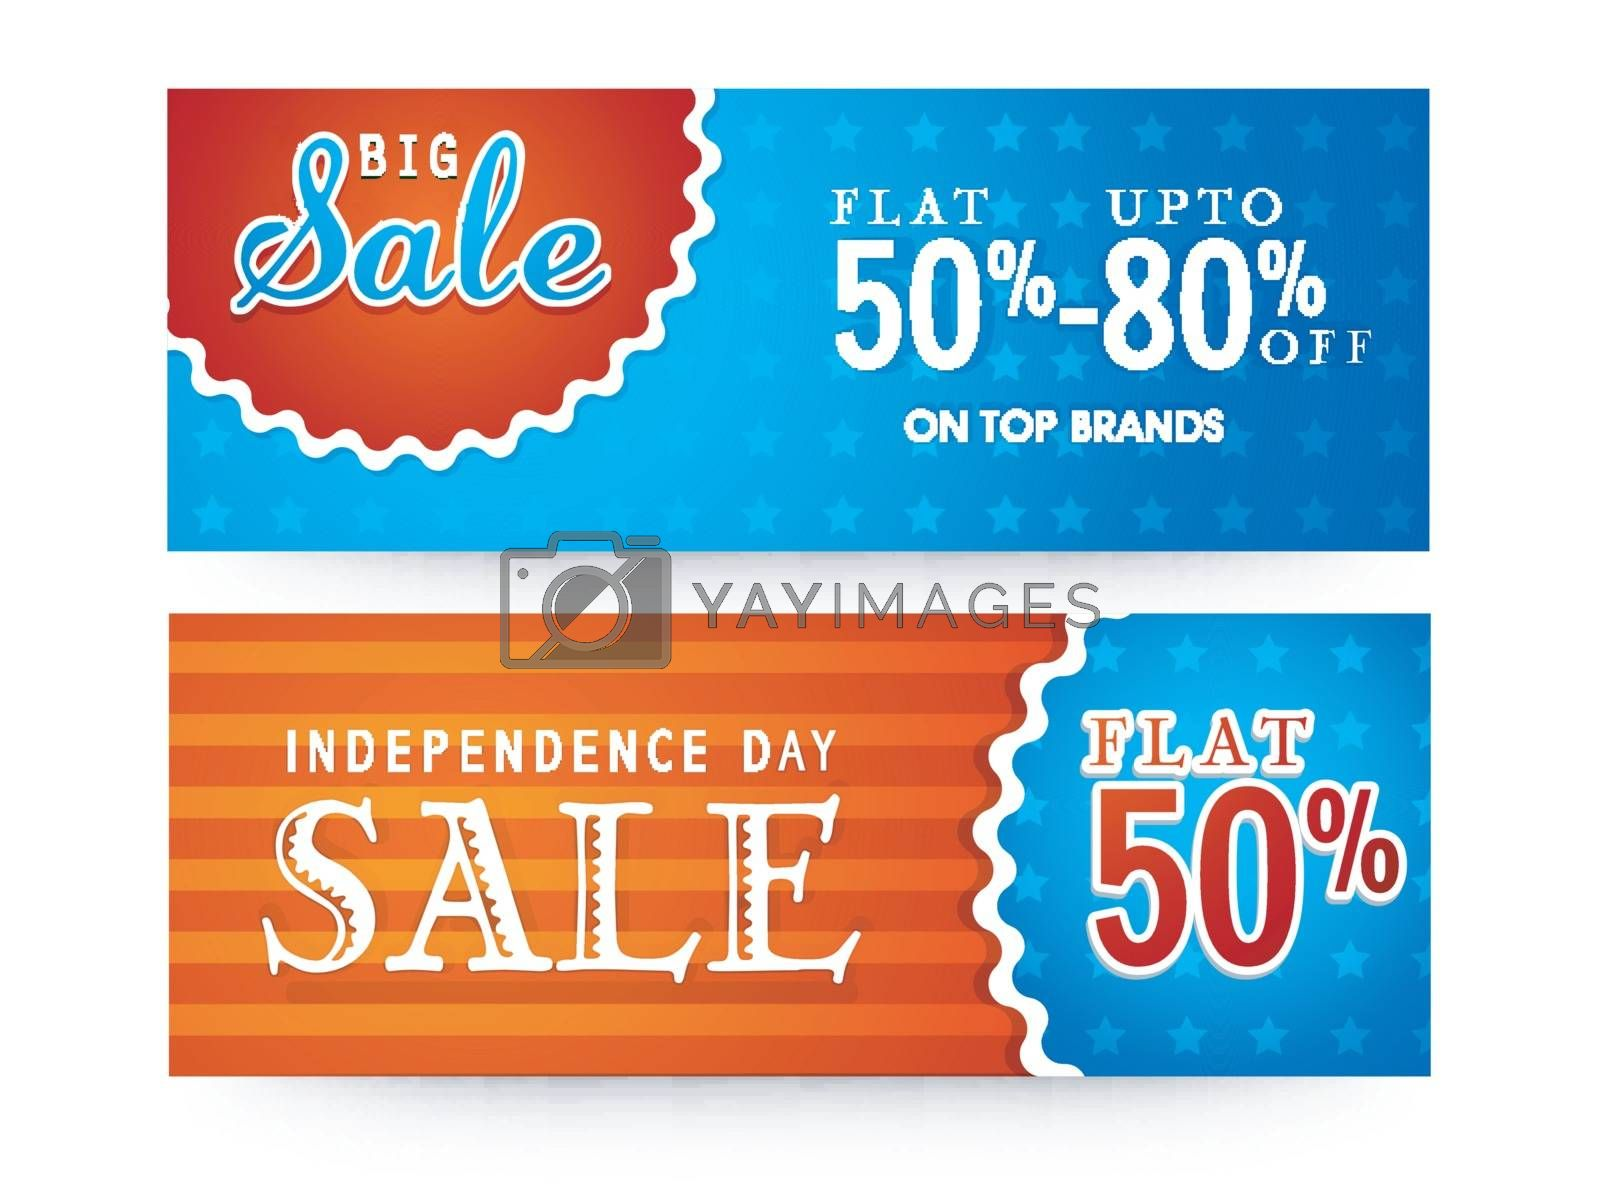 Big sale with flat discount offer, Website headers or Banners set for American Independence Day celebration.